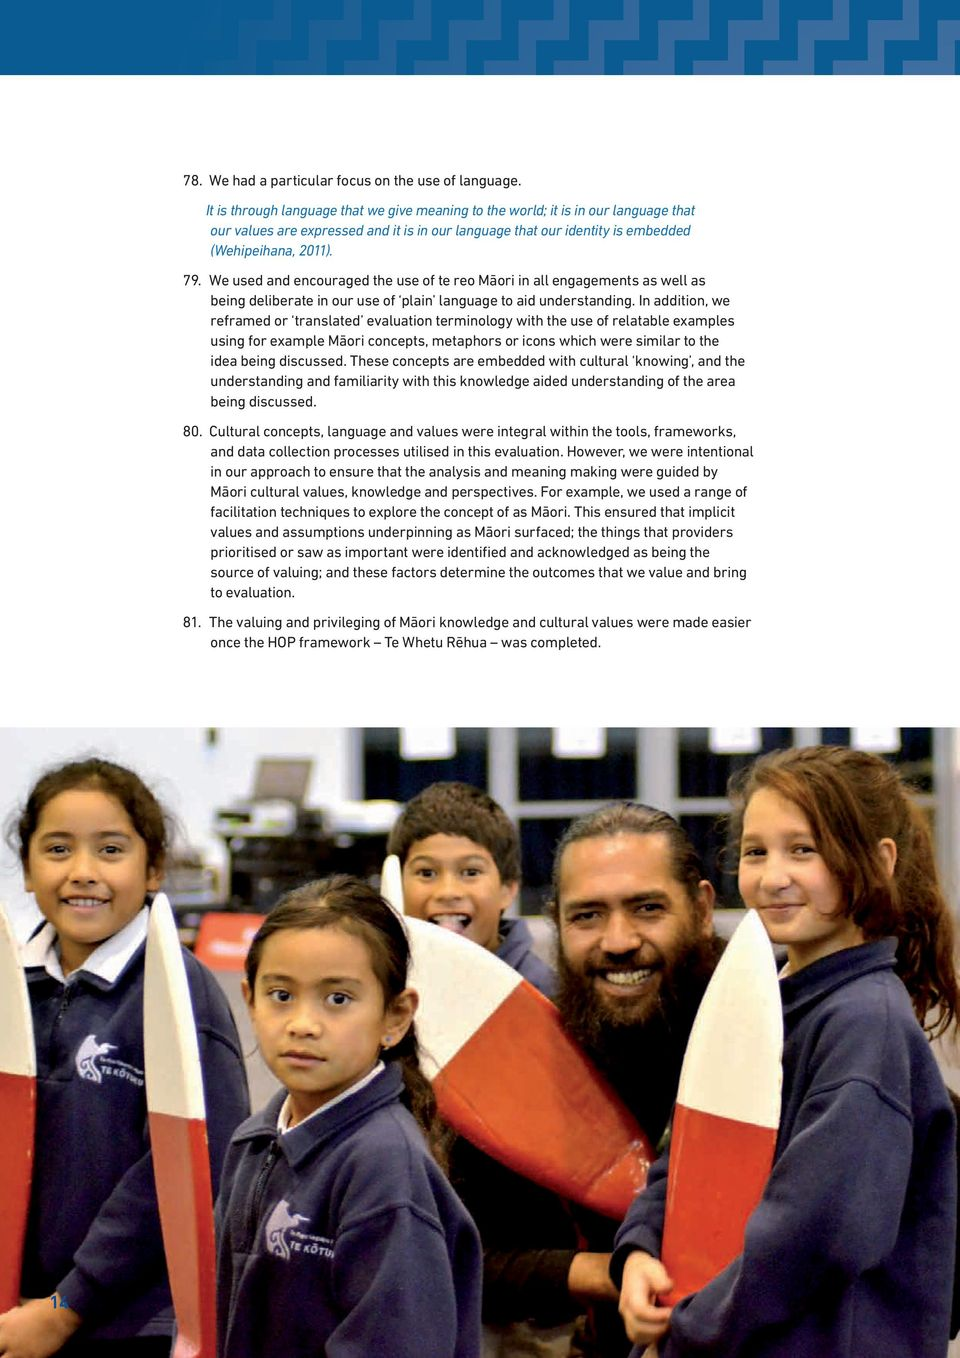 We used and encouraged the use of te reo Māori in all engagements as well as being deliberate in our use of plain language to aid understanding.